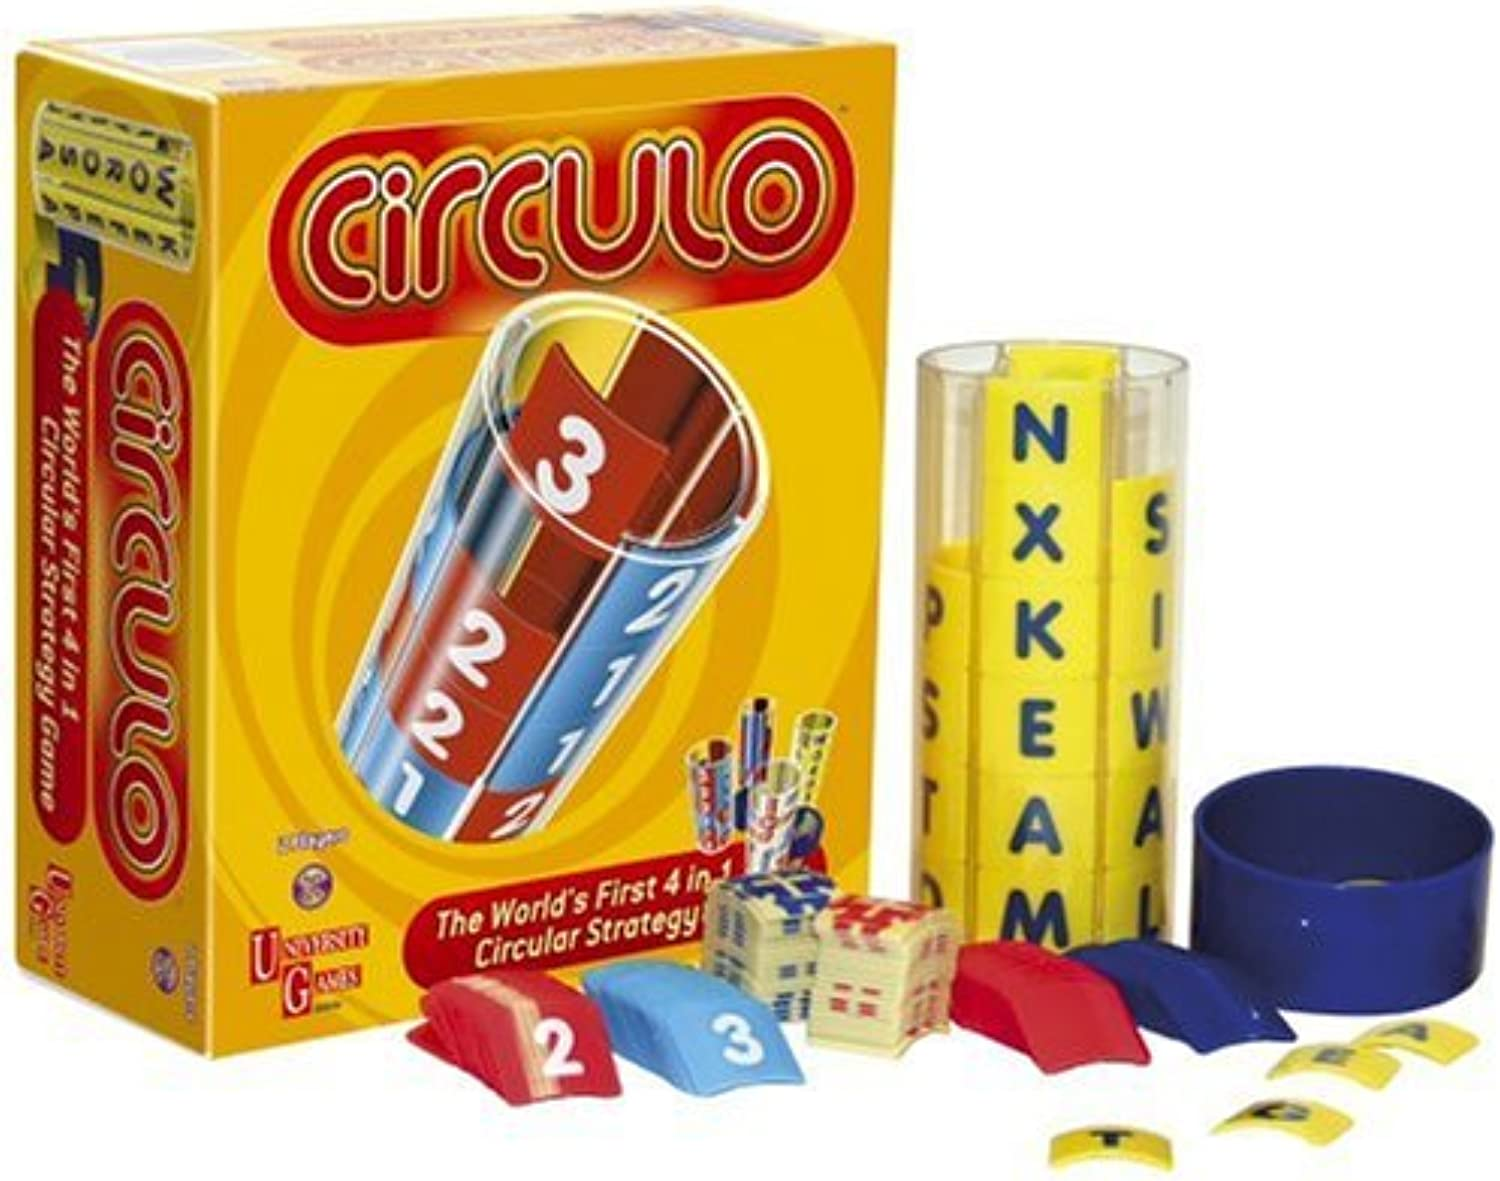 Circulo 4 in 1 Game